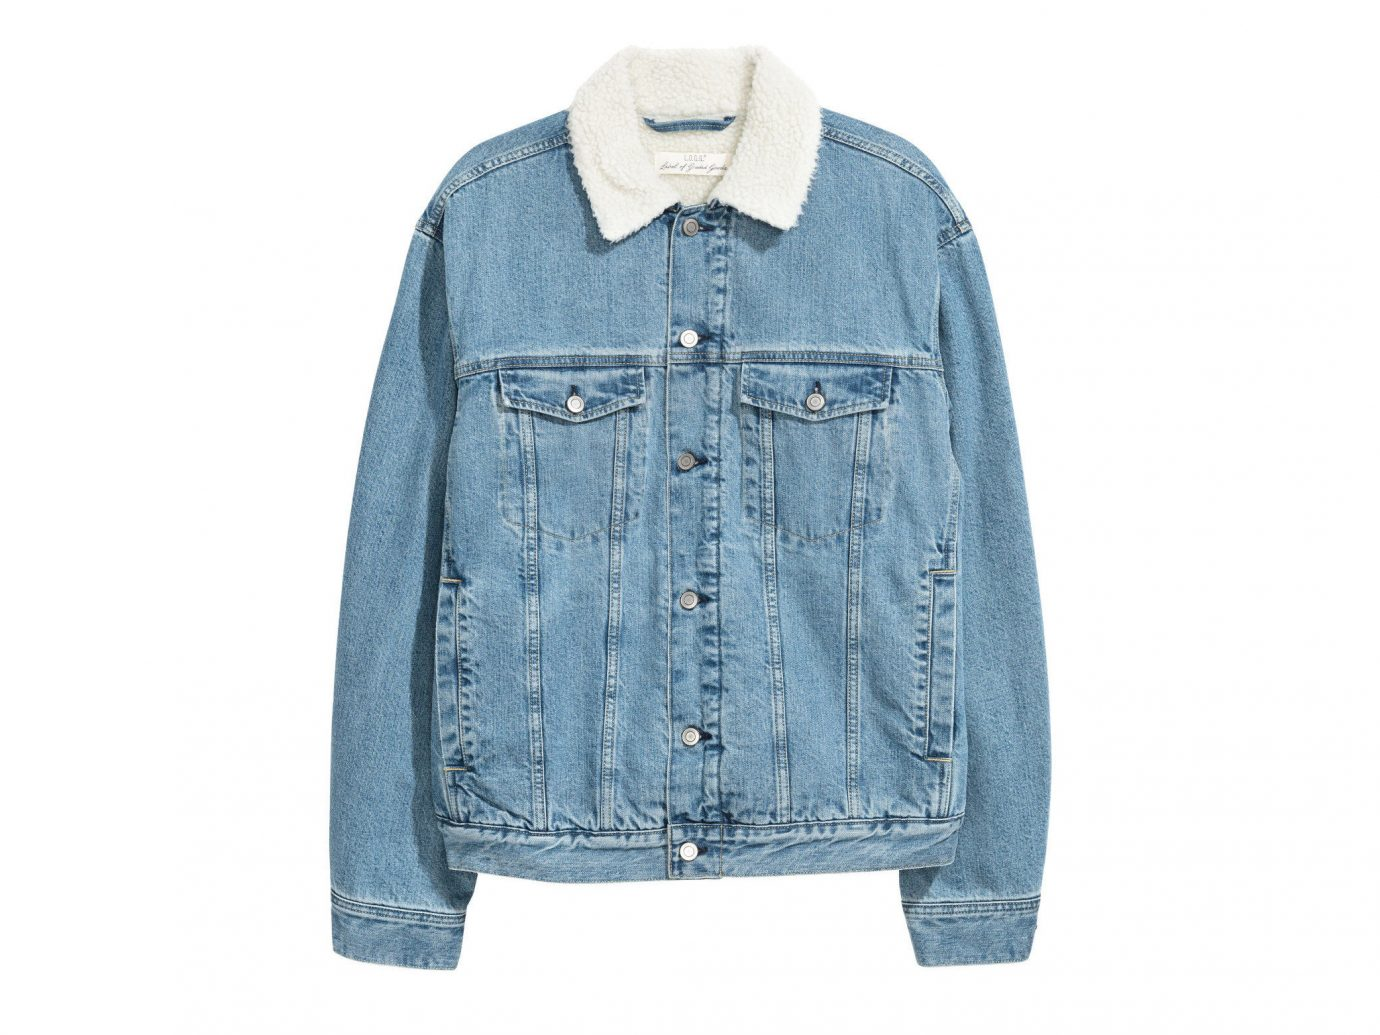 8f147ead57532 Style + Design Travel Shop clothing denim jacket wearing textile jeans  pocket sleeve material product